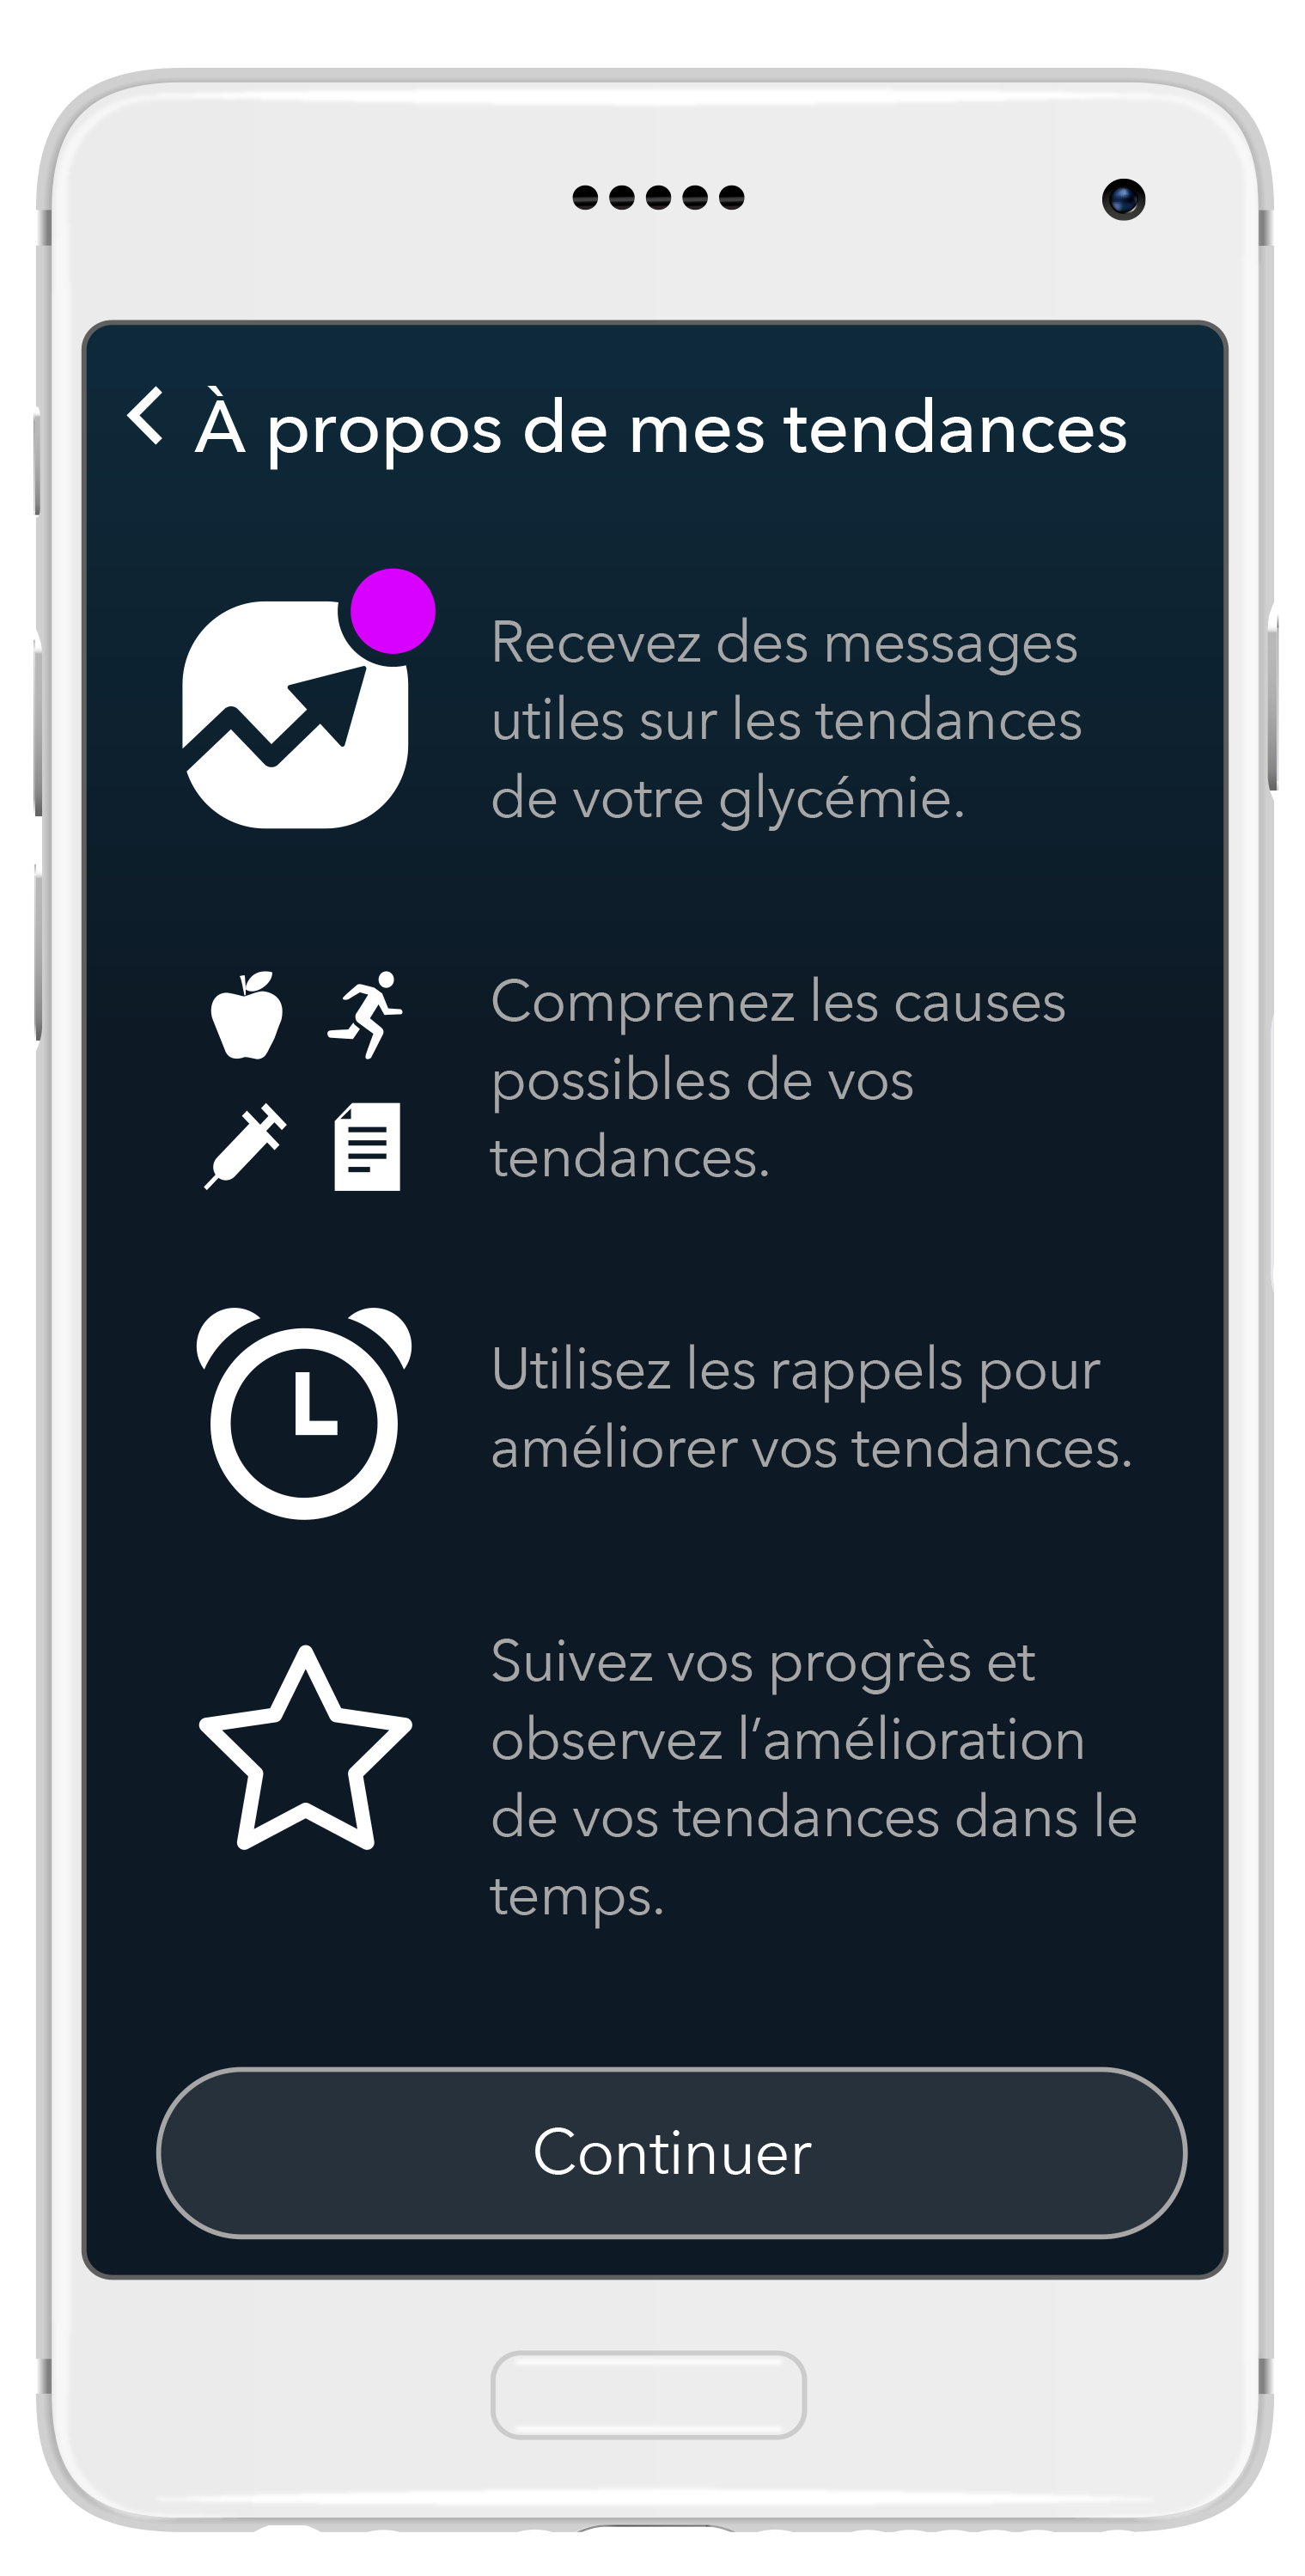 L'application propose des options de programmes de tests personnalisés